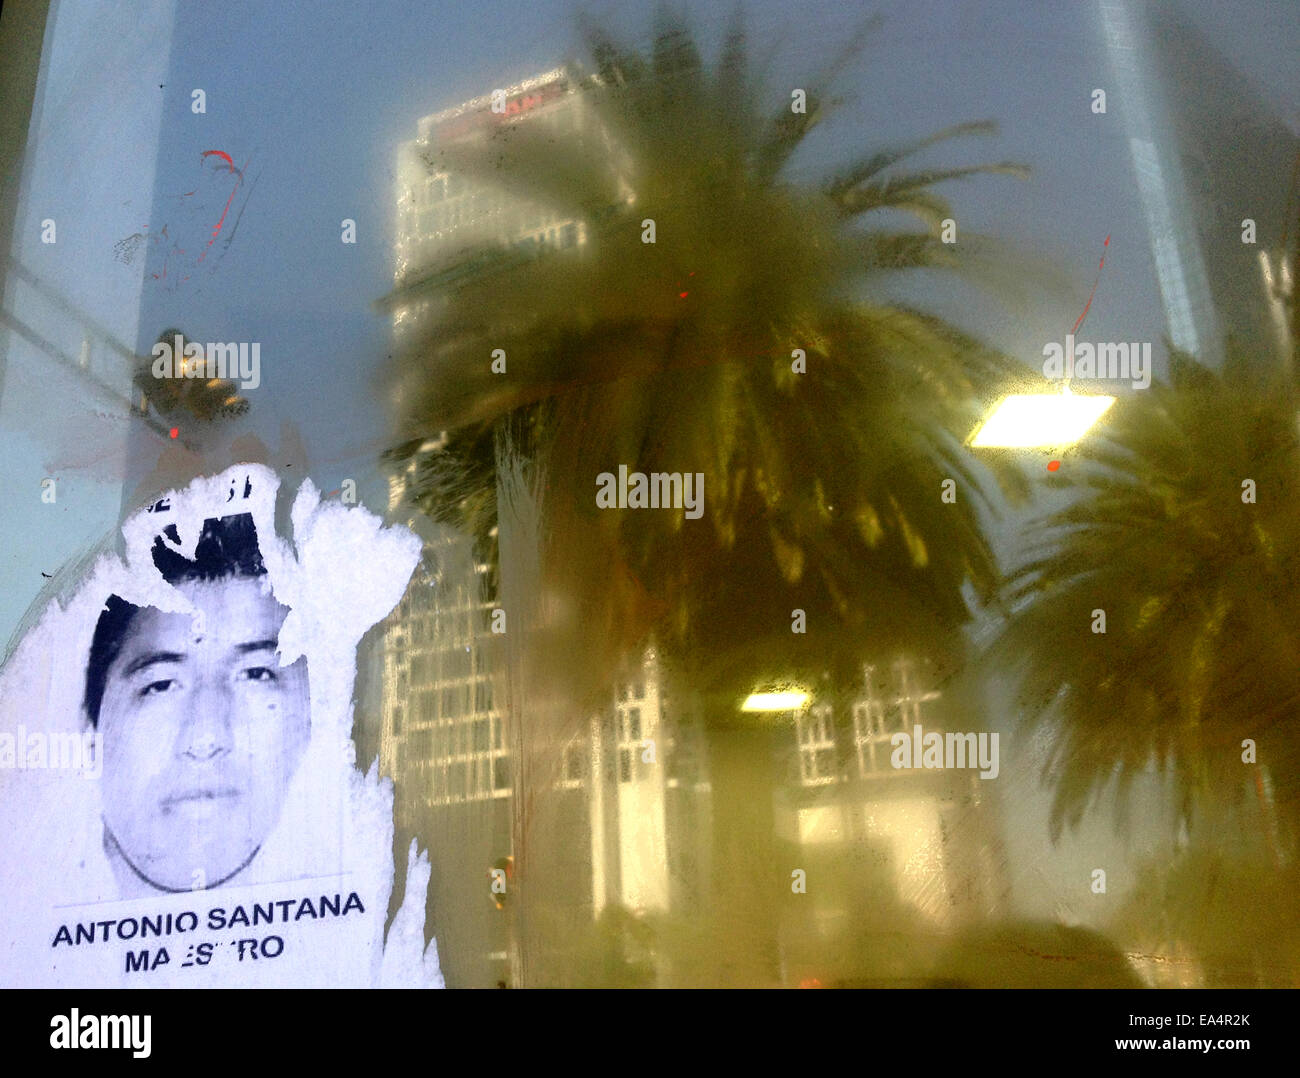 Mexico city, Mexico. 6th November, 2014. A portrait of missing student Antonio Santana is displayed  in Reforma Stock Photo